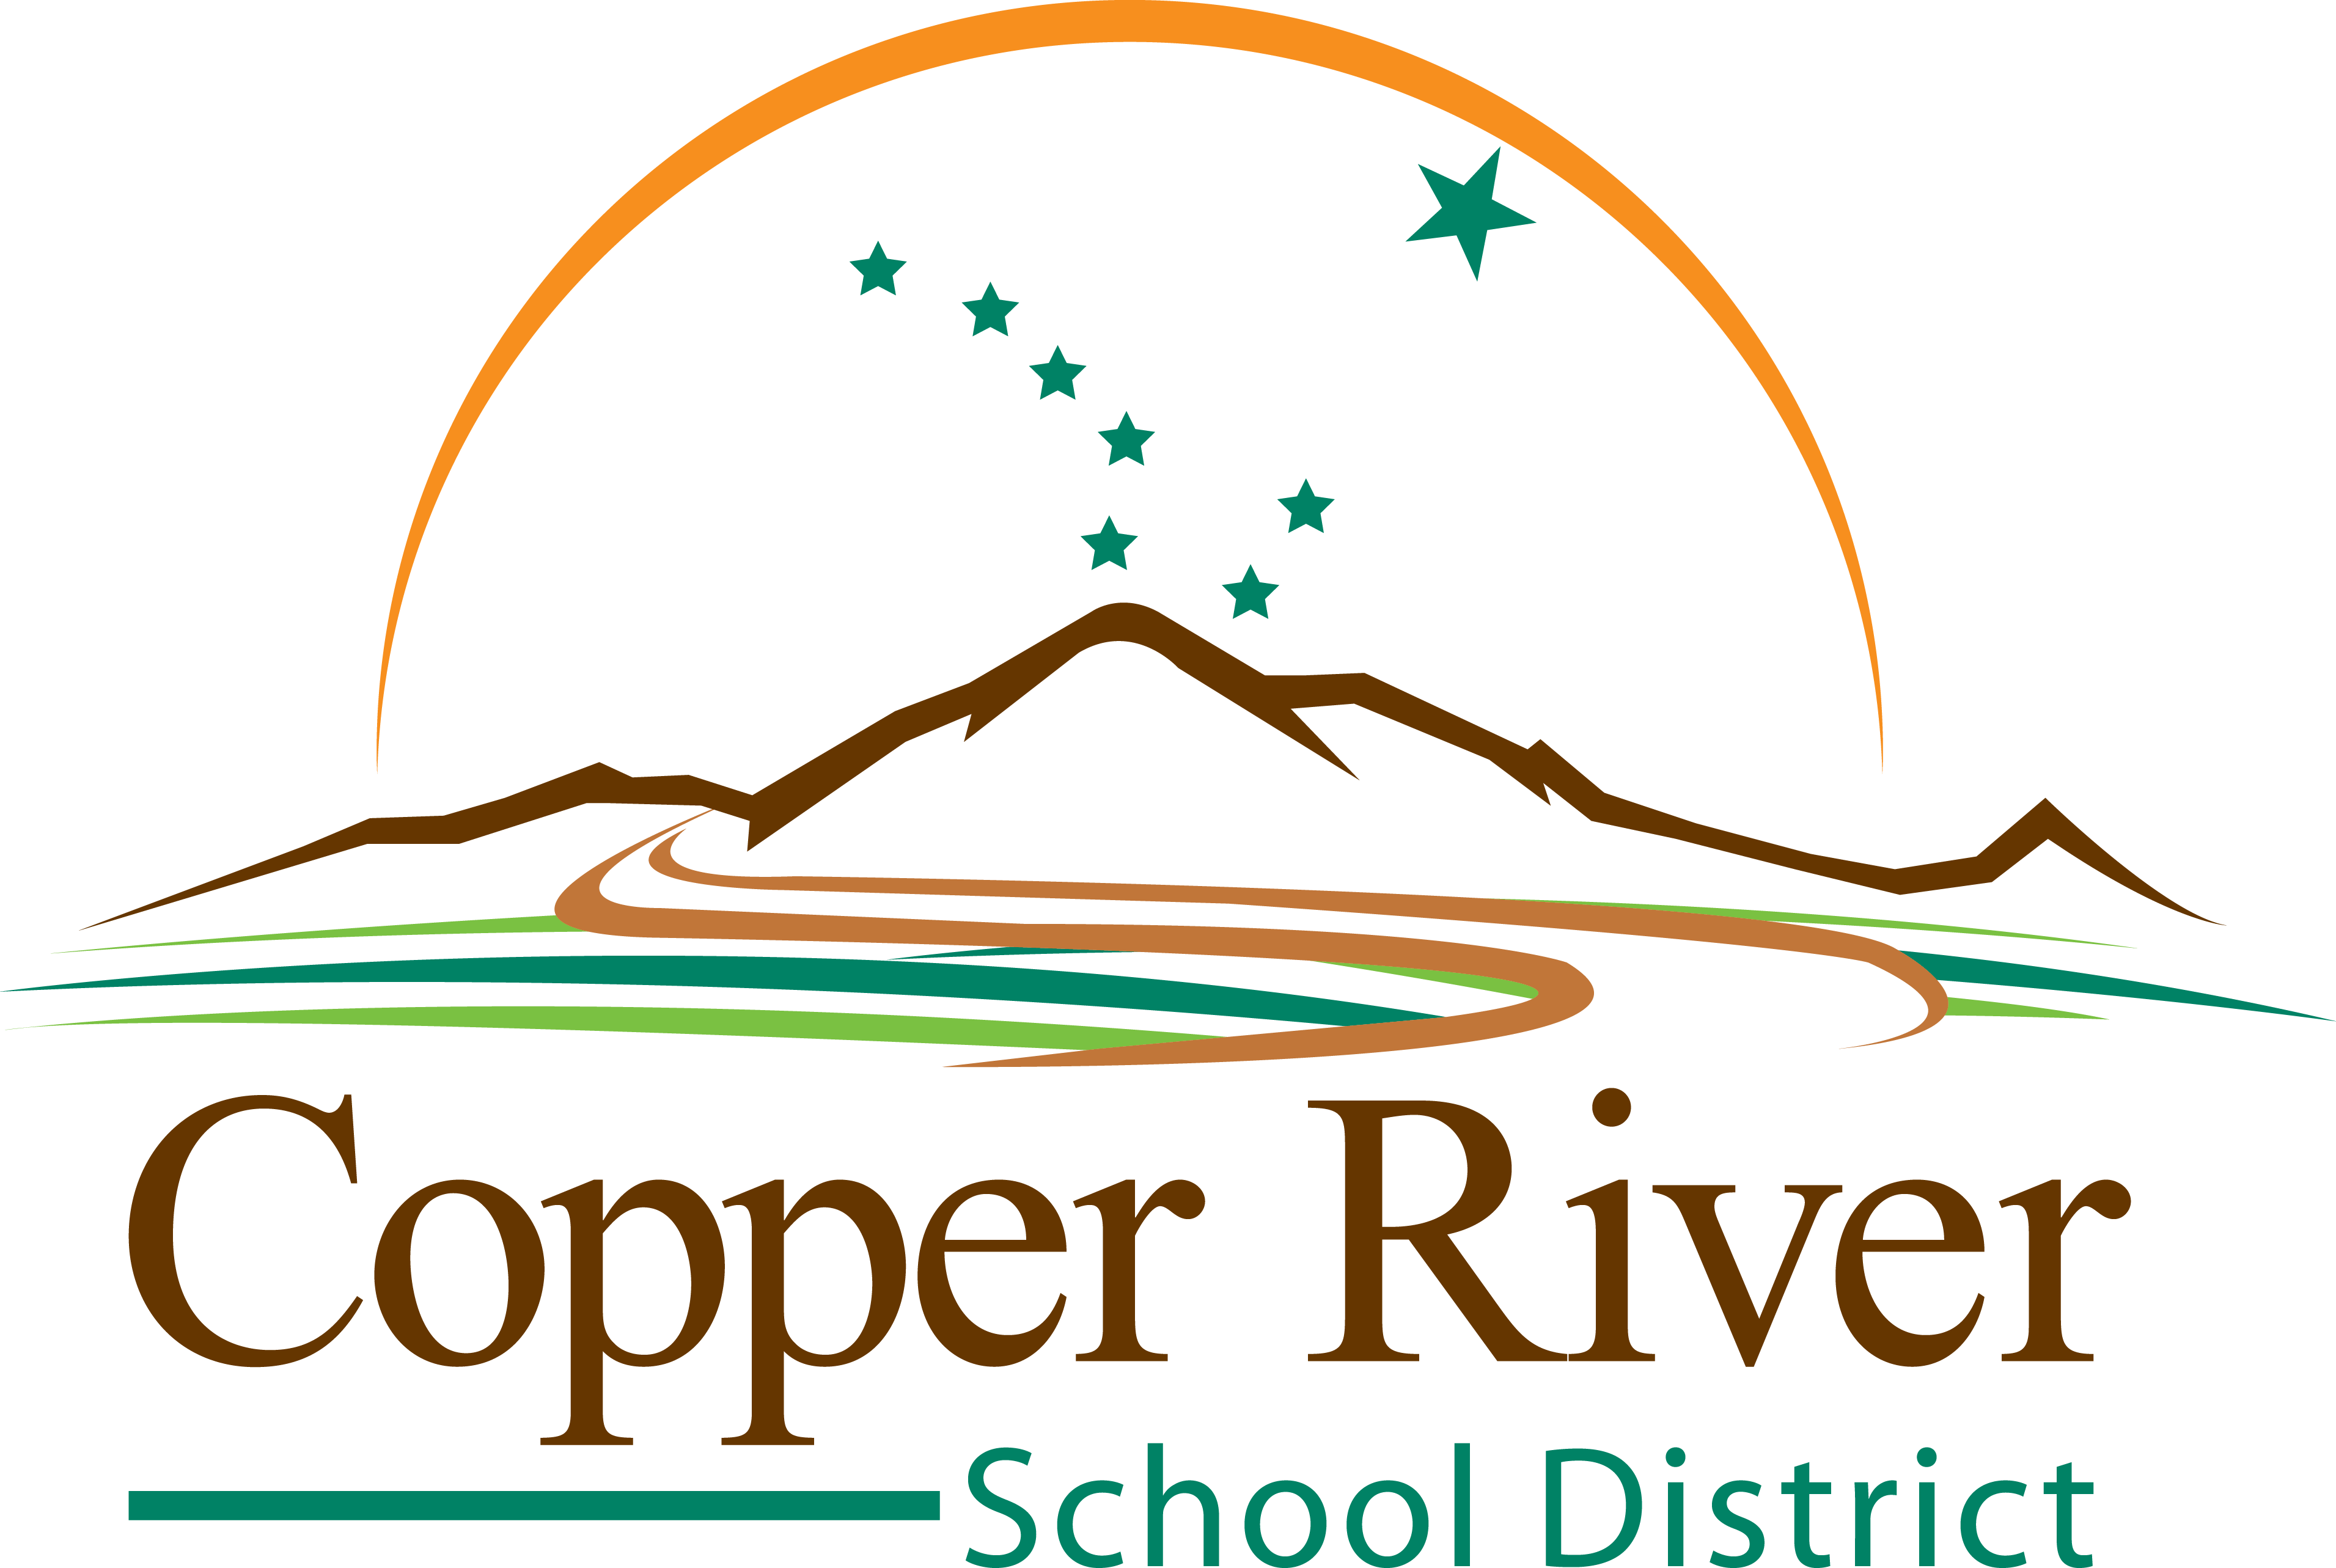 Copper River School District logo.